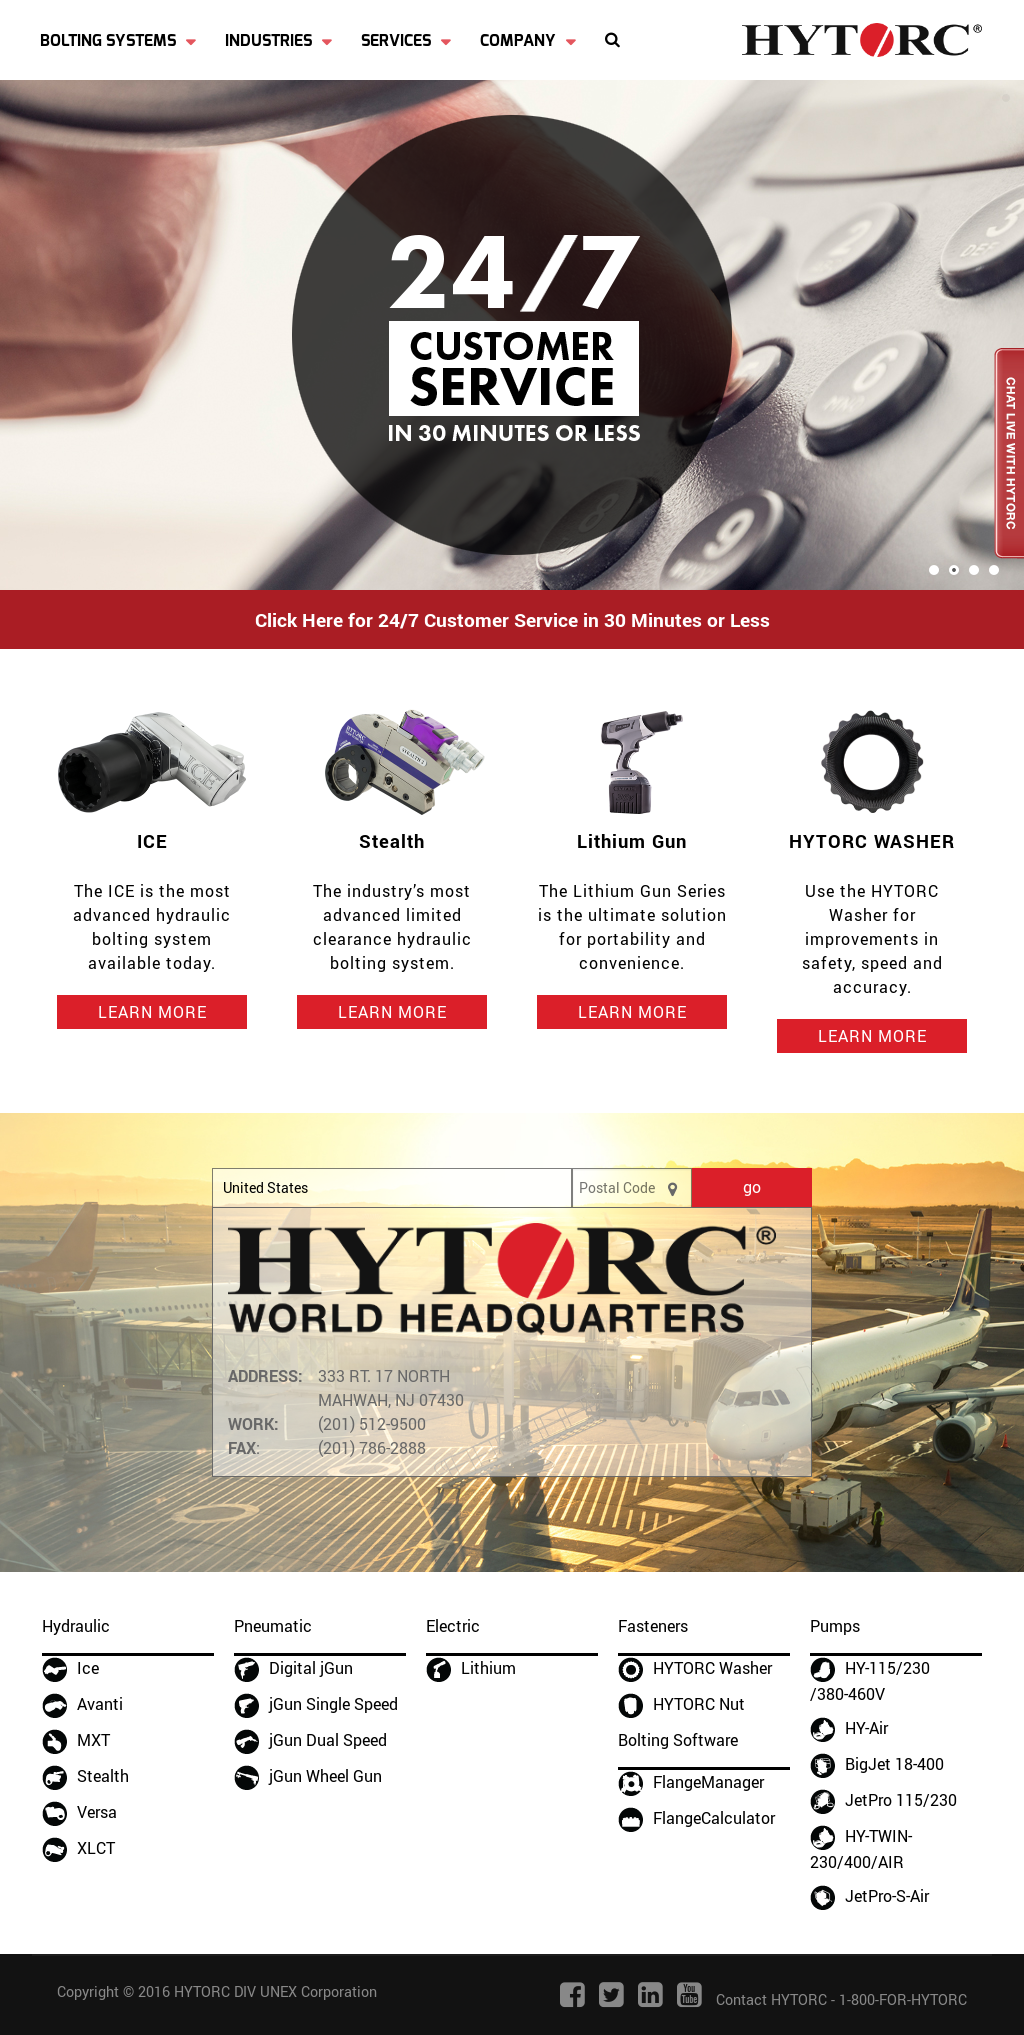 Hytorc Competitors, Revenue and Employees - Owler Company